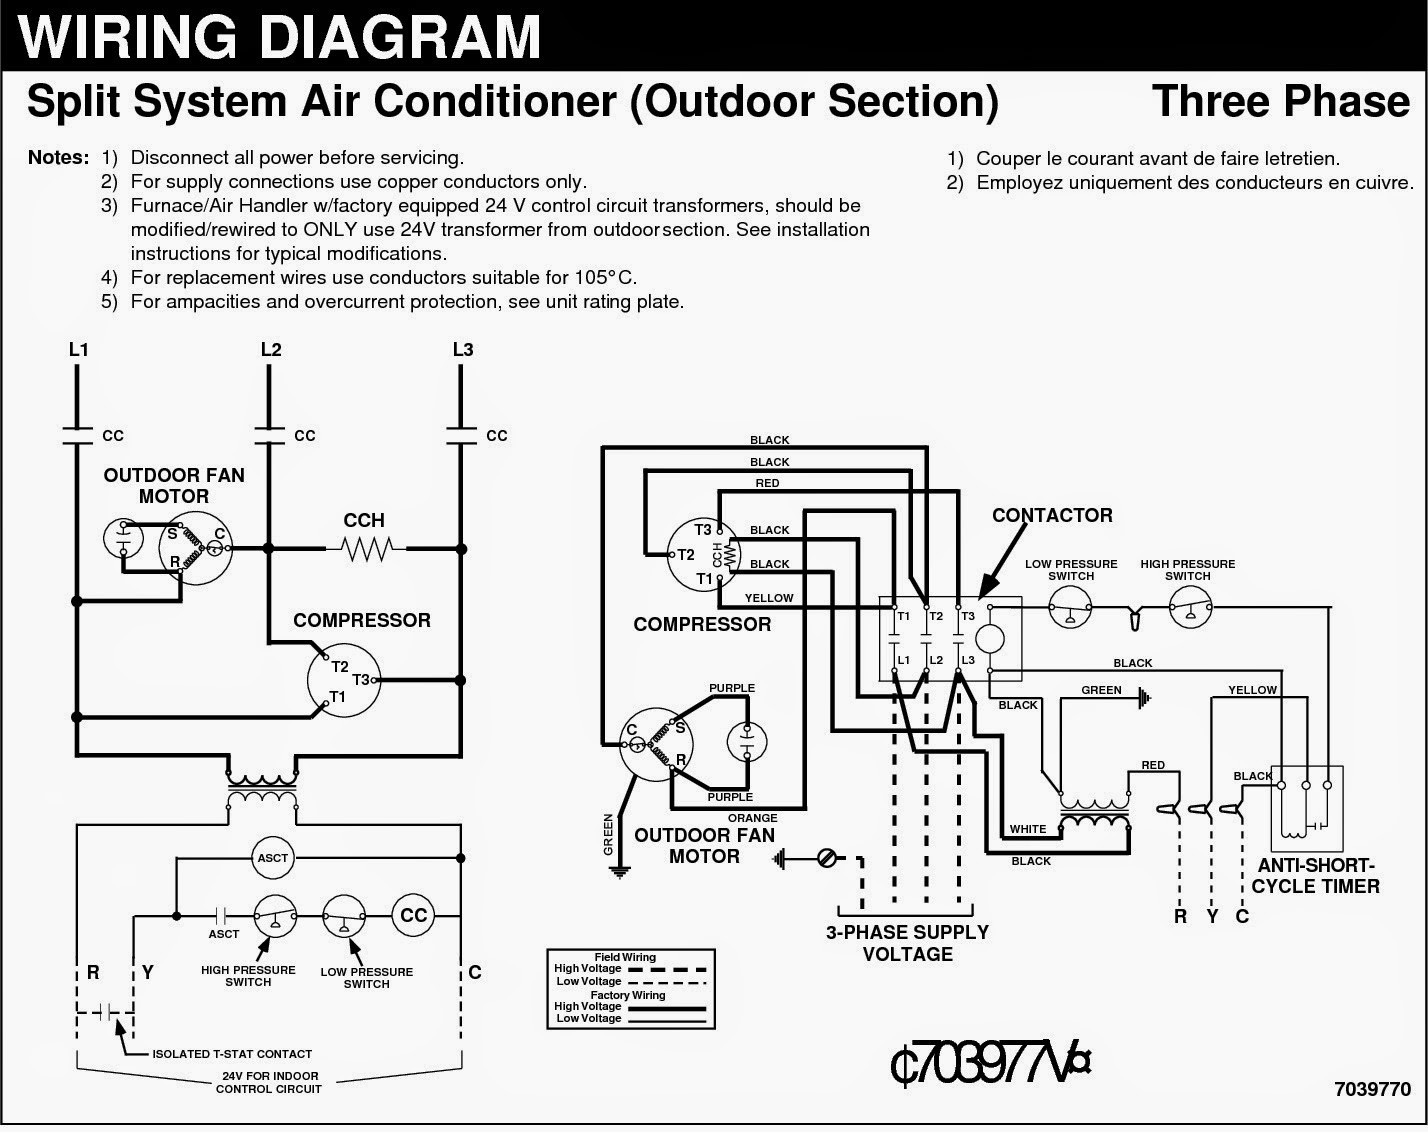 Ac Wiring Circuit - Wiring Diagram Rules on ac filter circuits, house wiring circuits, basic home wiring circuits, ac power circuits, simple ac circuits, understanding ac circuits, ac electrical circuits, simple wiring circuits,